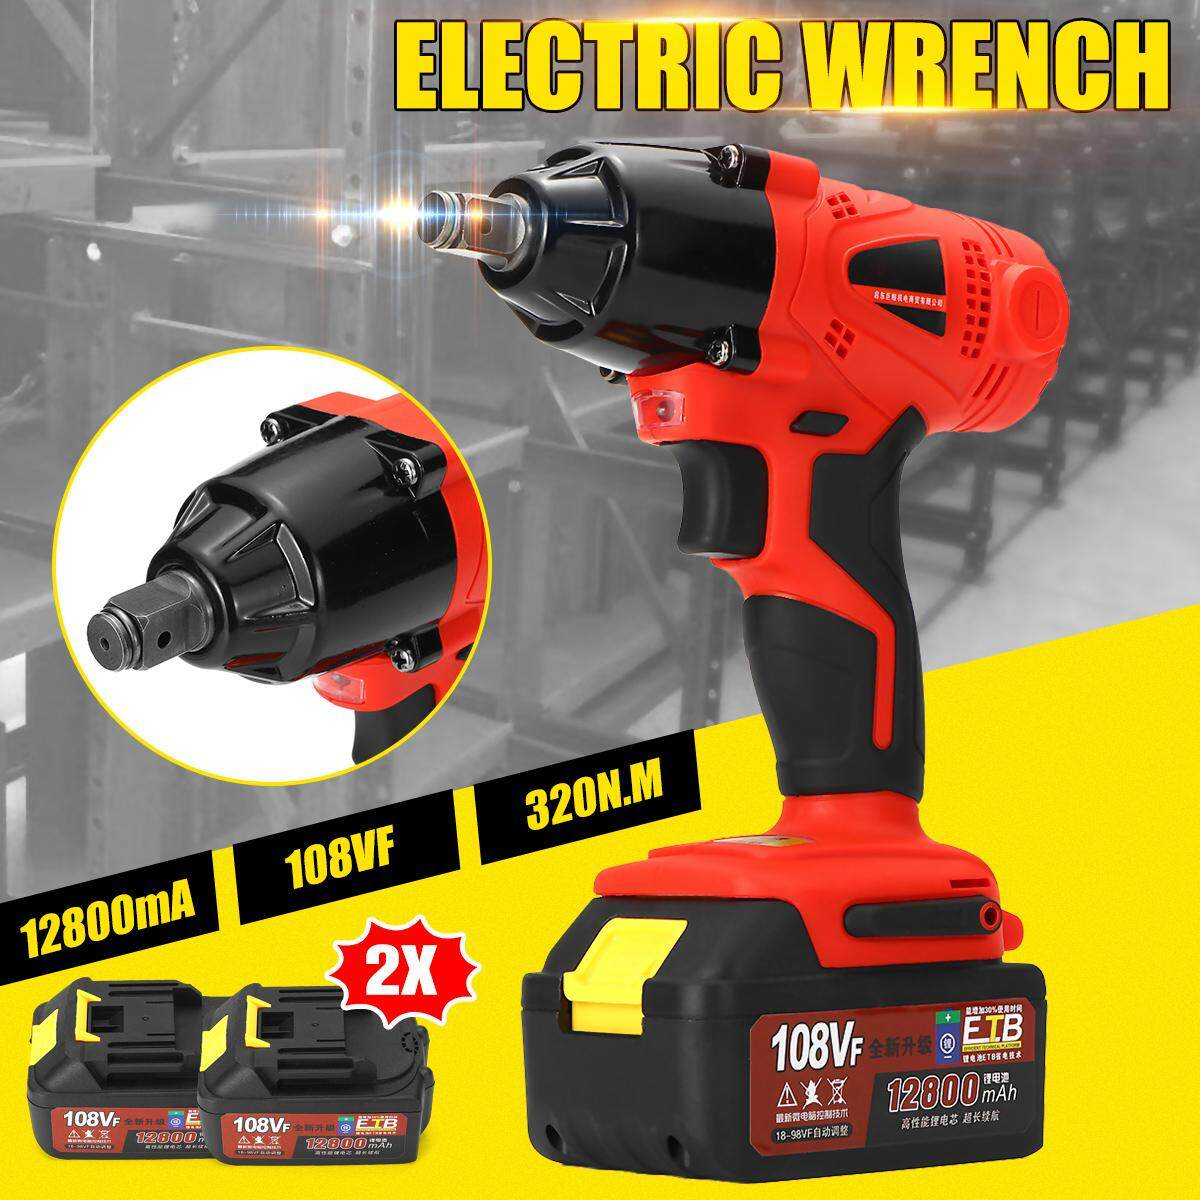 108VF 320Nm Brushless Cordless Impact Wrench Torque Drill Tool